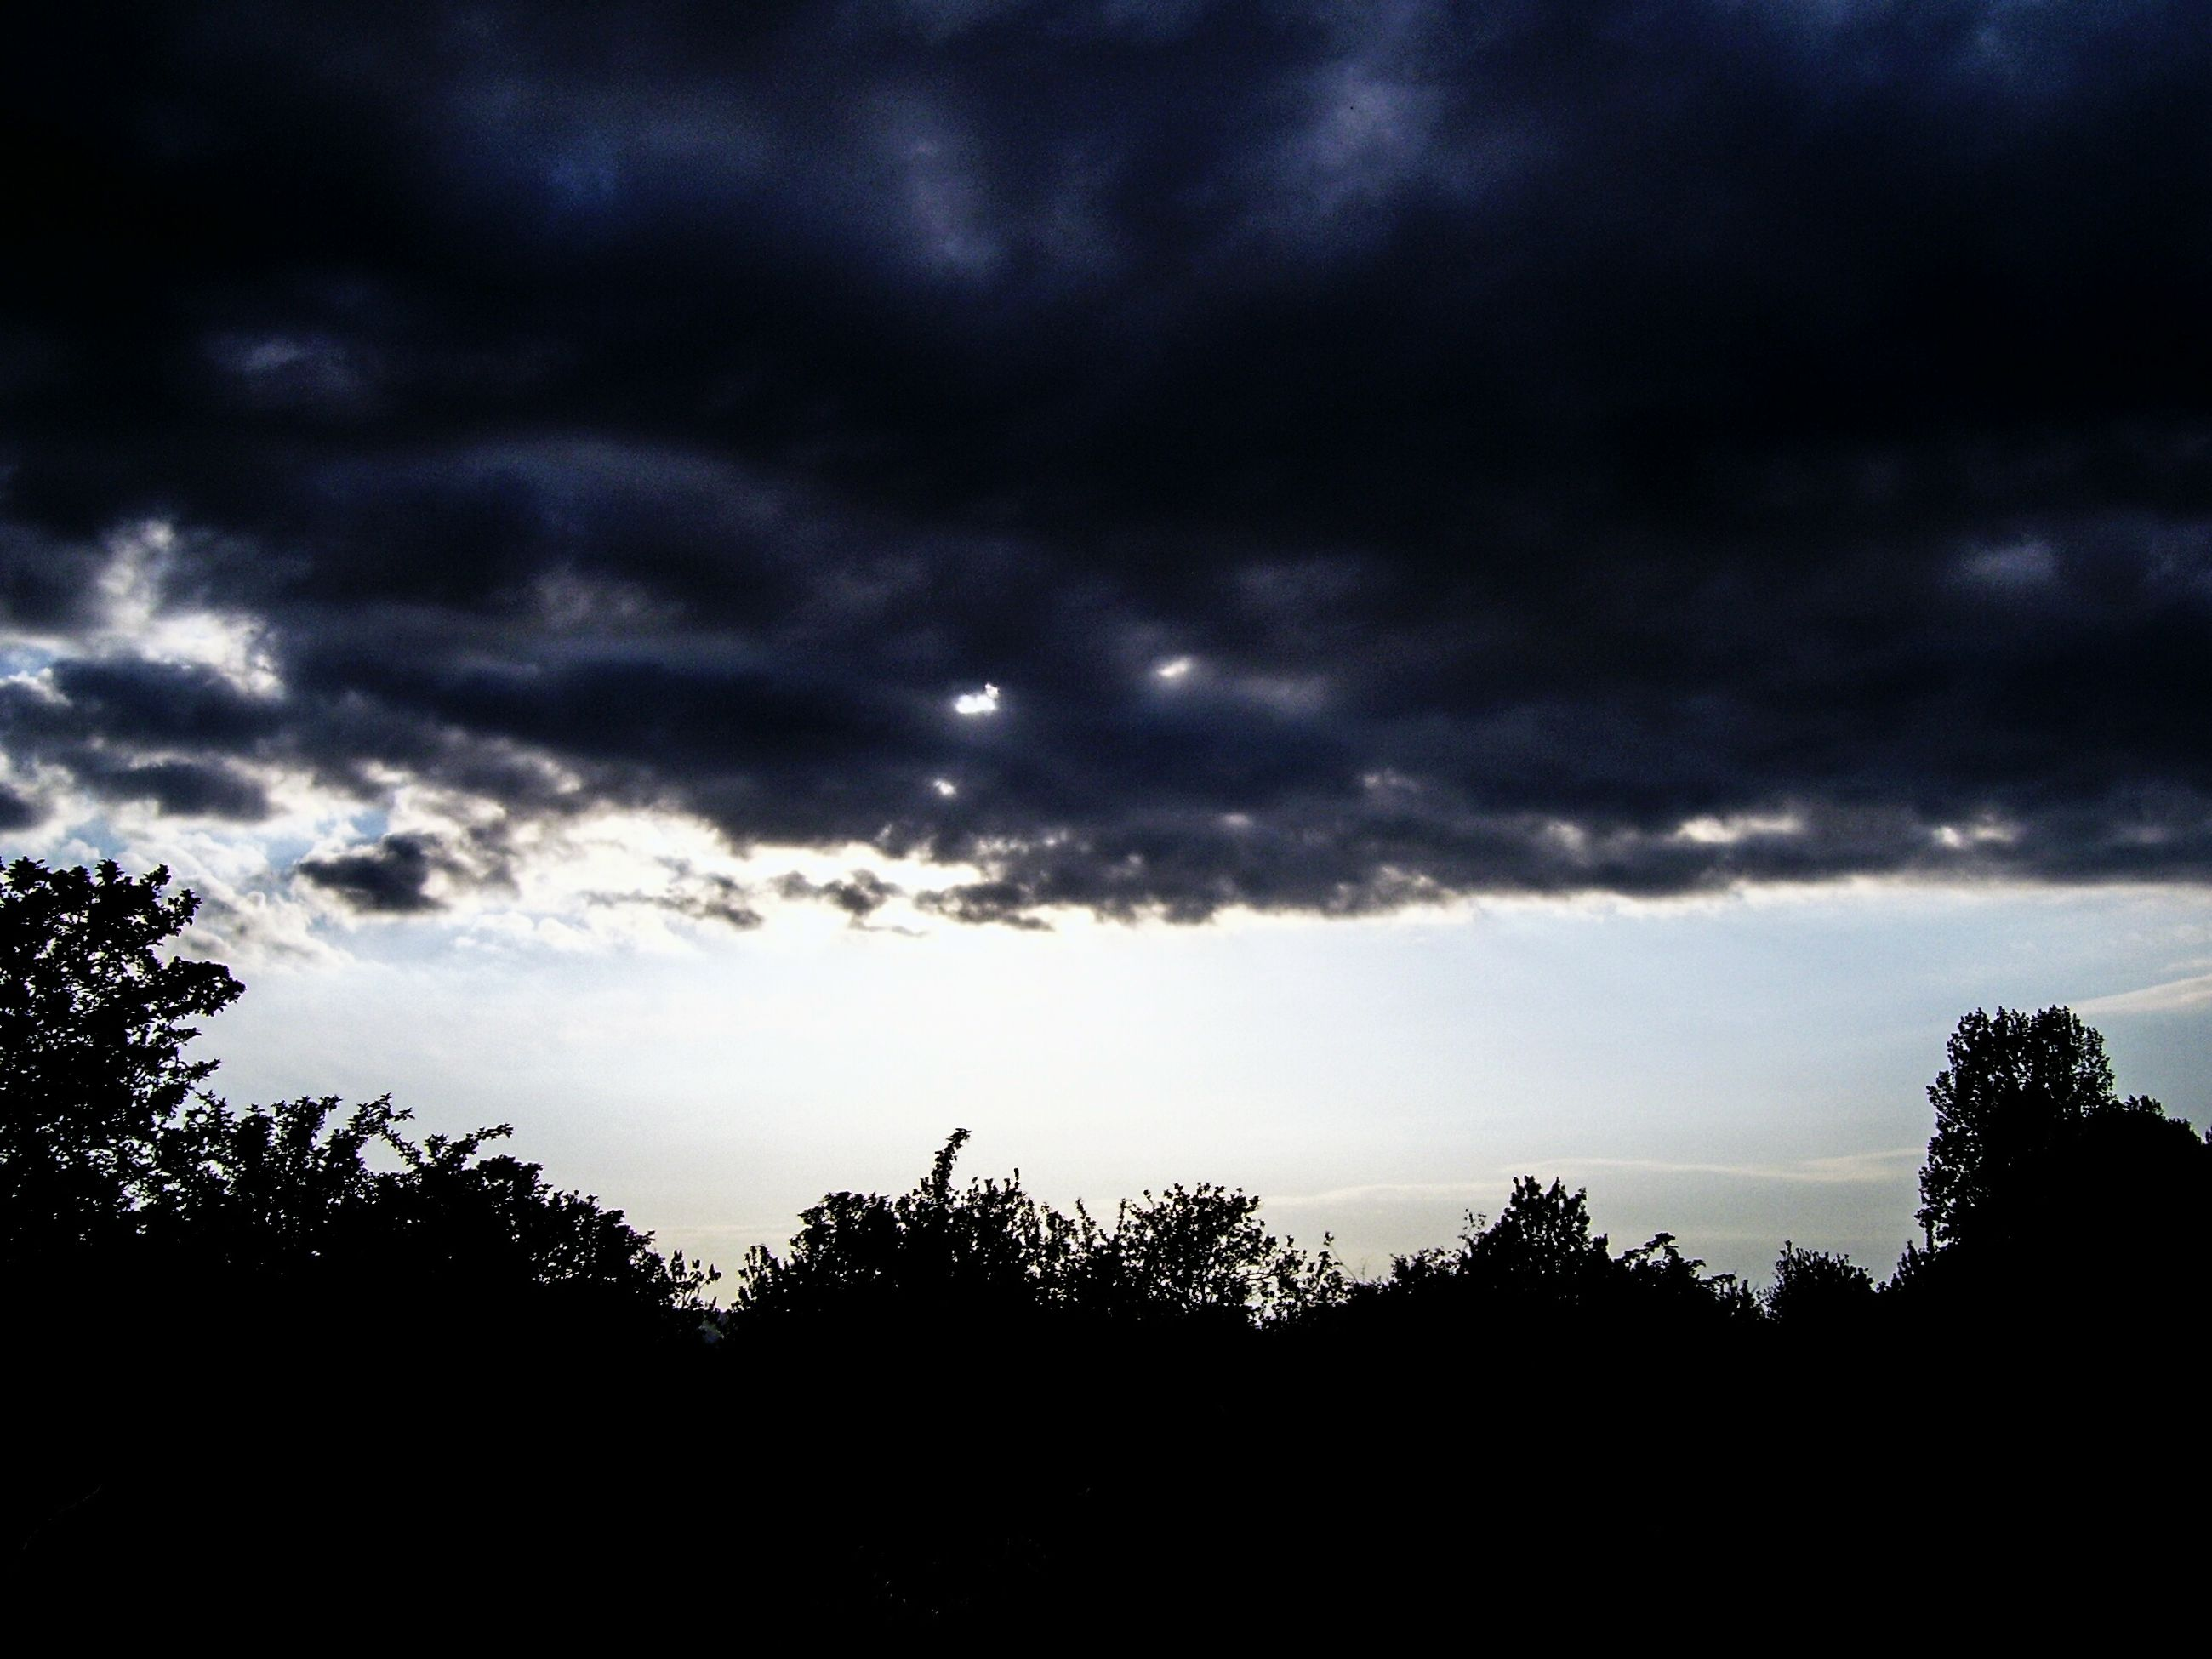 sky, silhouette, cloud - sky, cloudy, tranquility, tree, tranquil scene, beauty in nature, scenics, nature, overcast, low angle view, weather, cloud, storm cloud, dusk, dramatic sky, growth, landscape, idyllic